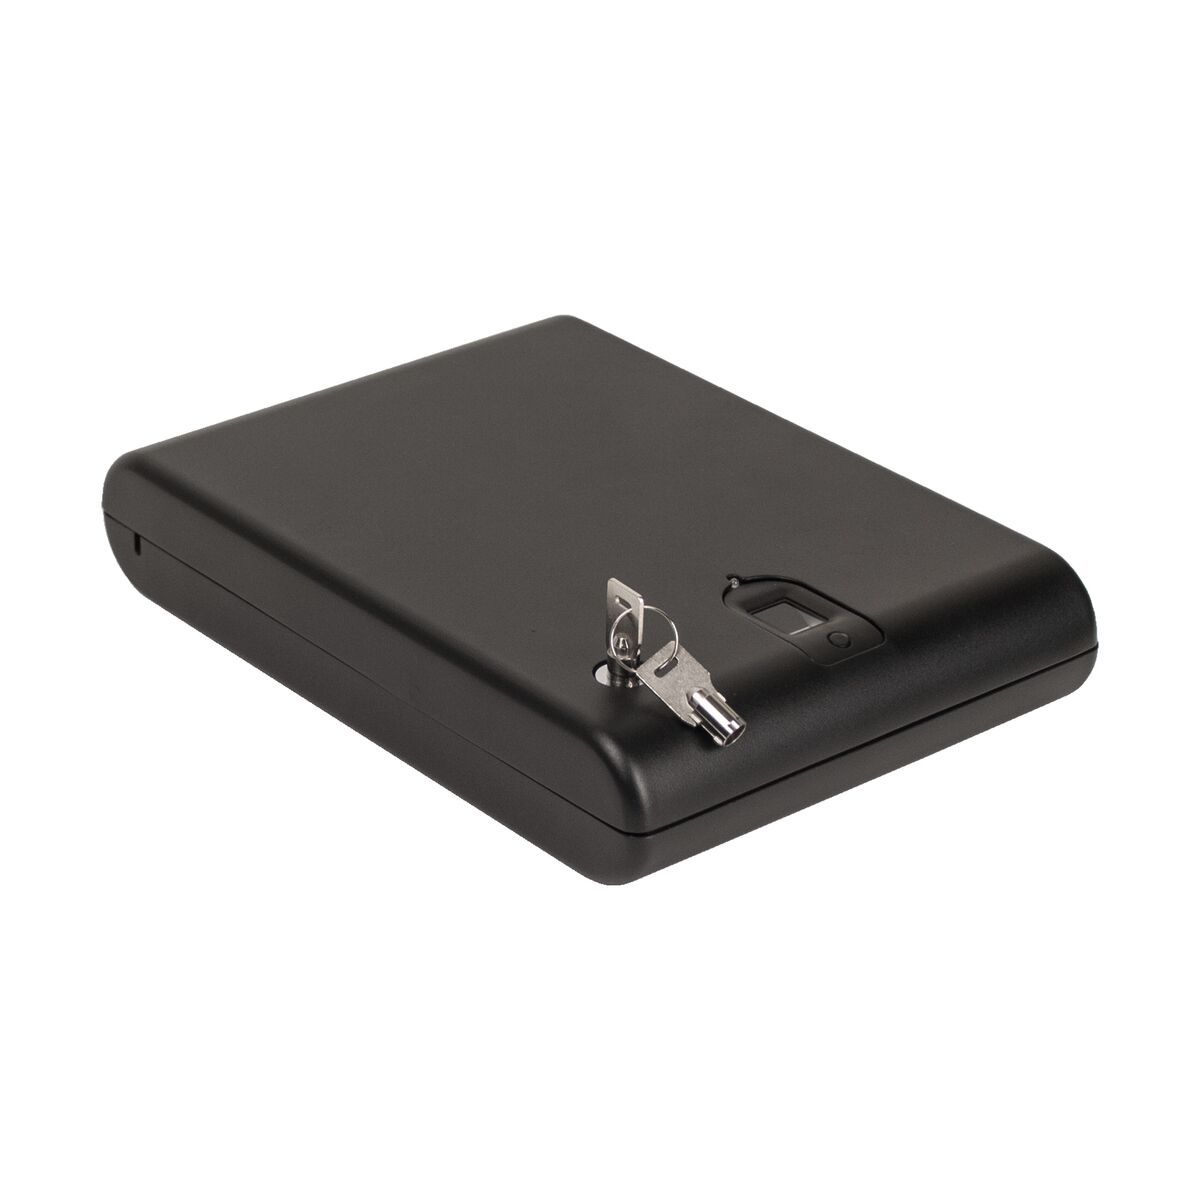 Biometric Handgun Safes - Tracker SPS-03B Small Pistol Safe With Biometric Lock